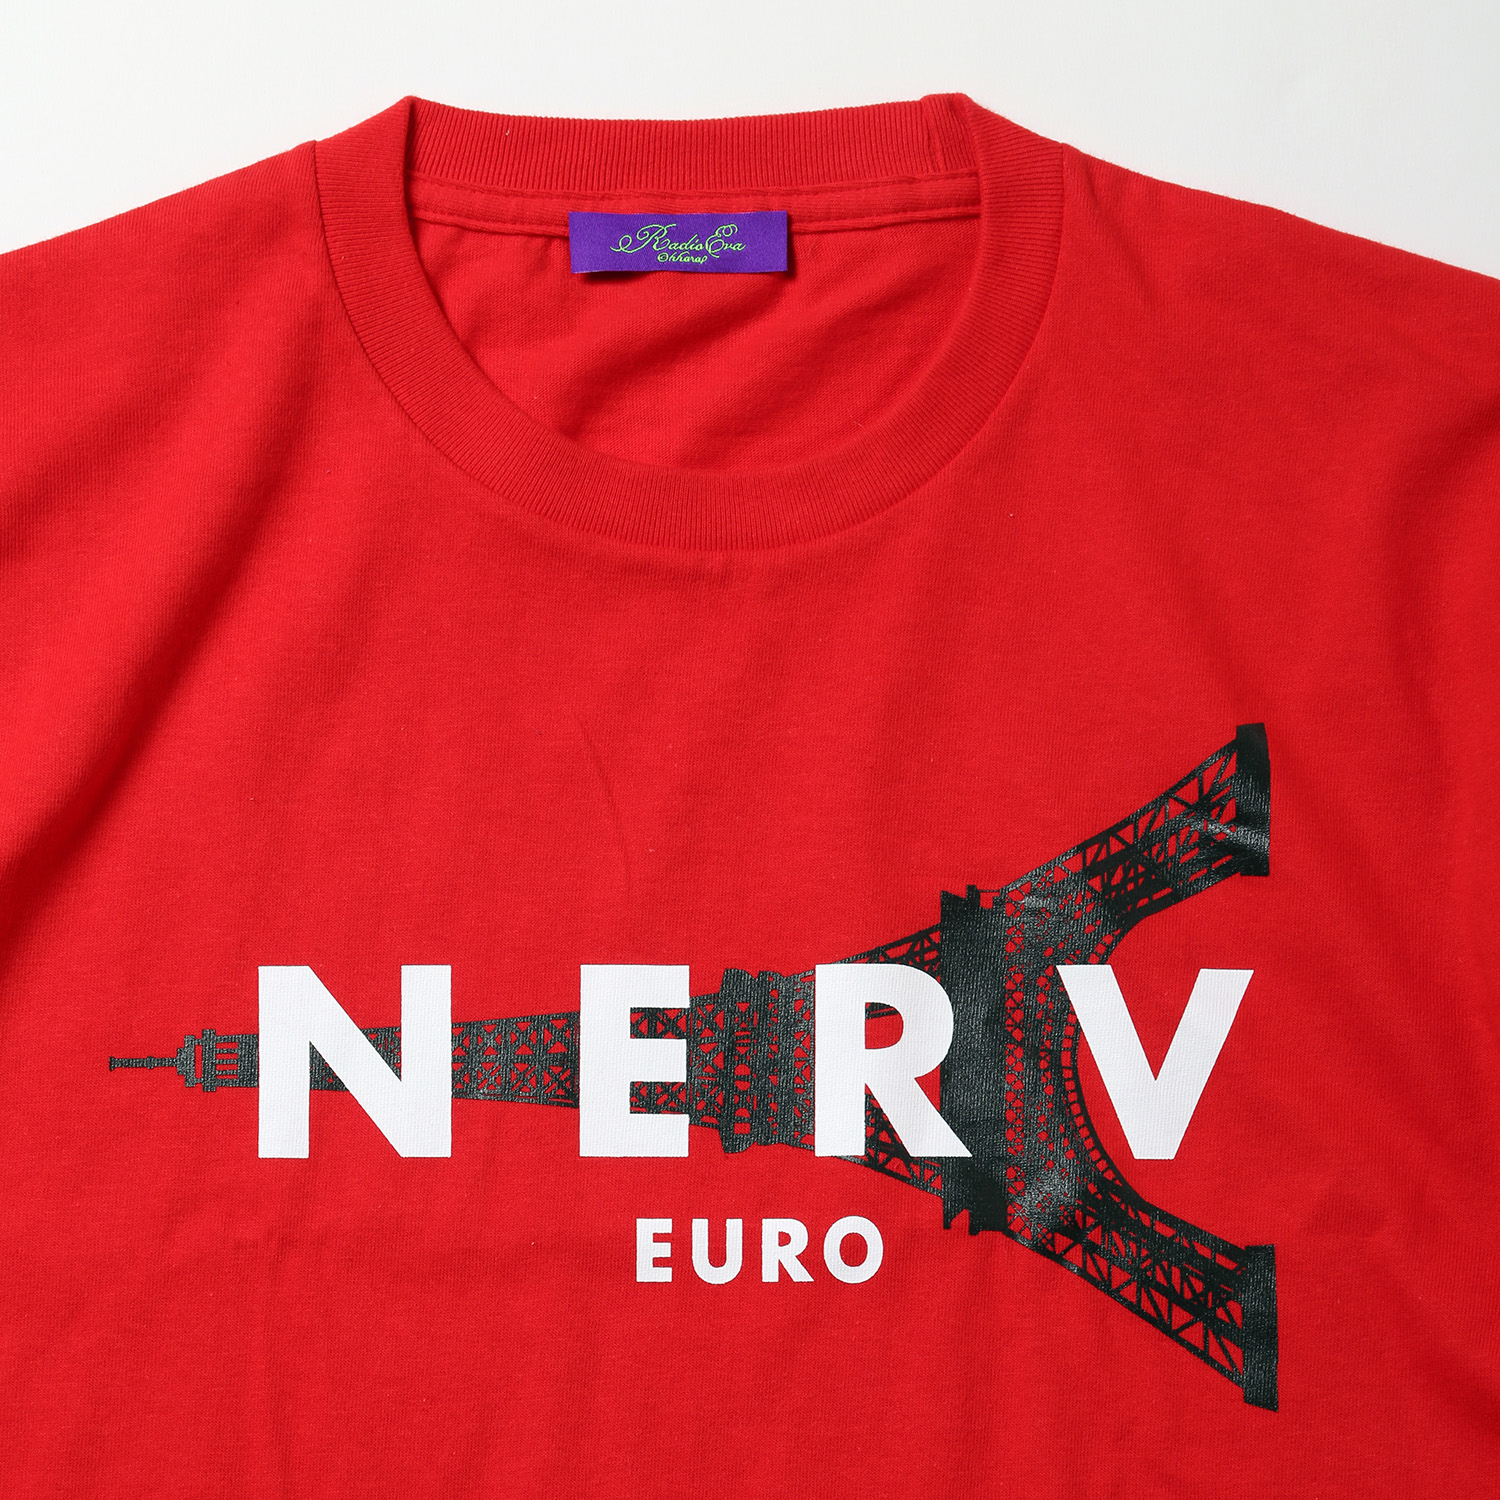 EURO NERV T-Shirt (RED)